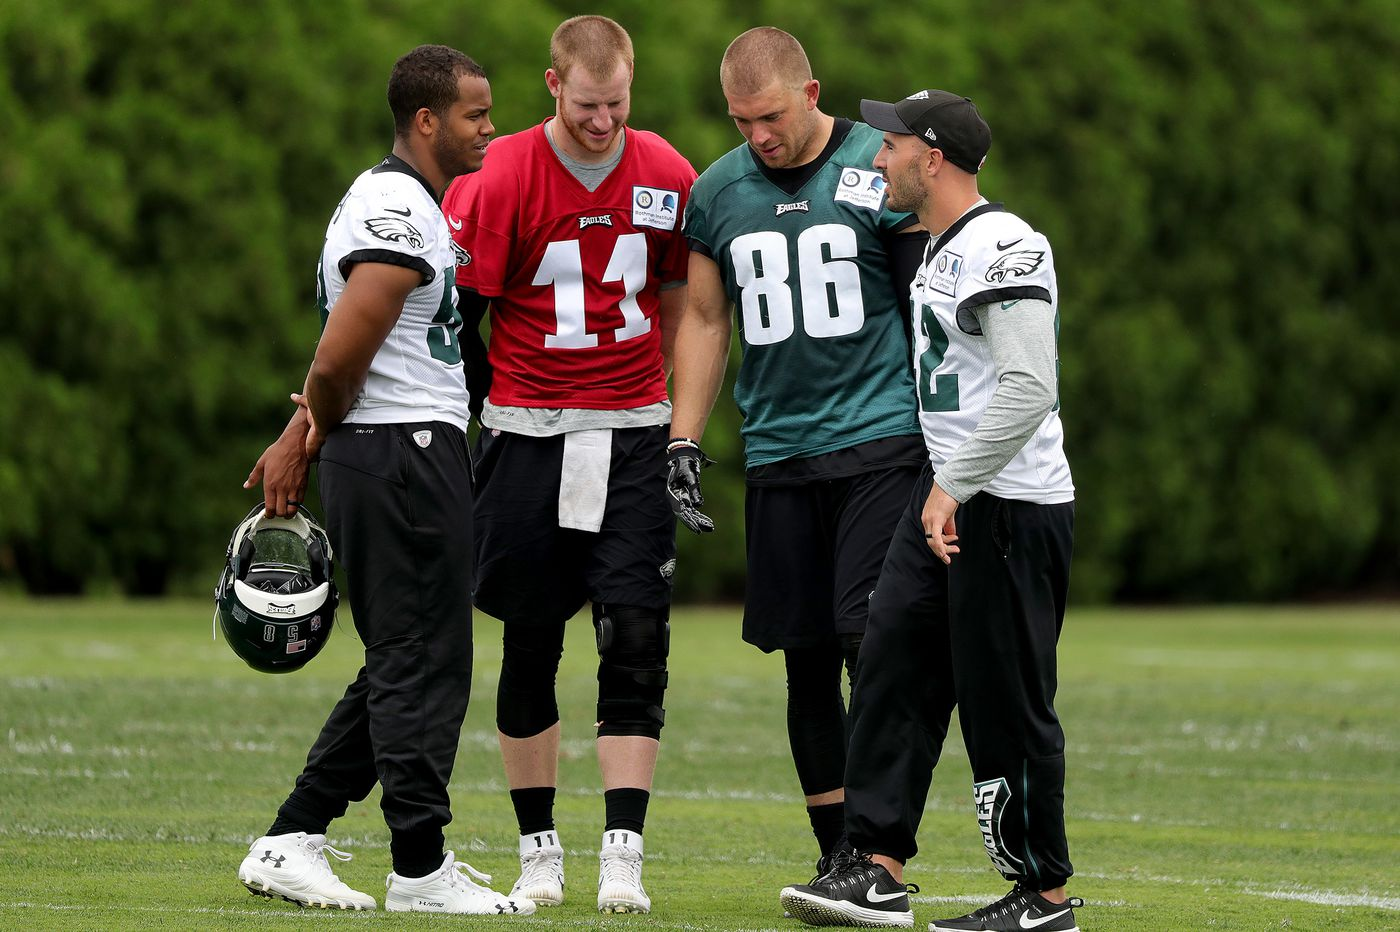 Eagles practice observations: Jalen Mills locks down; Nelson Agholor explodes; Dallas Goedert catches on